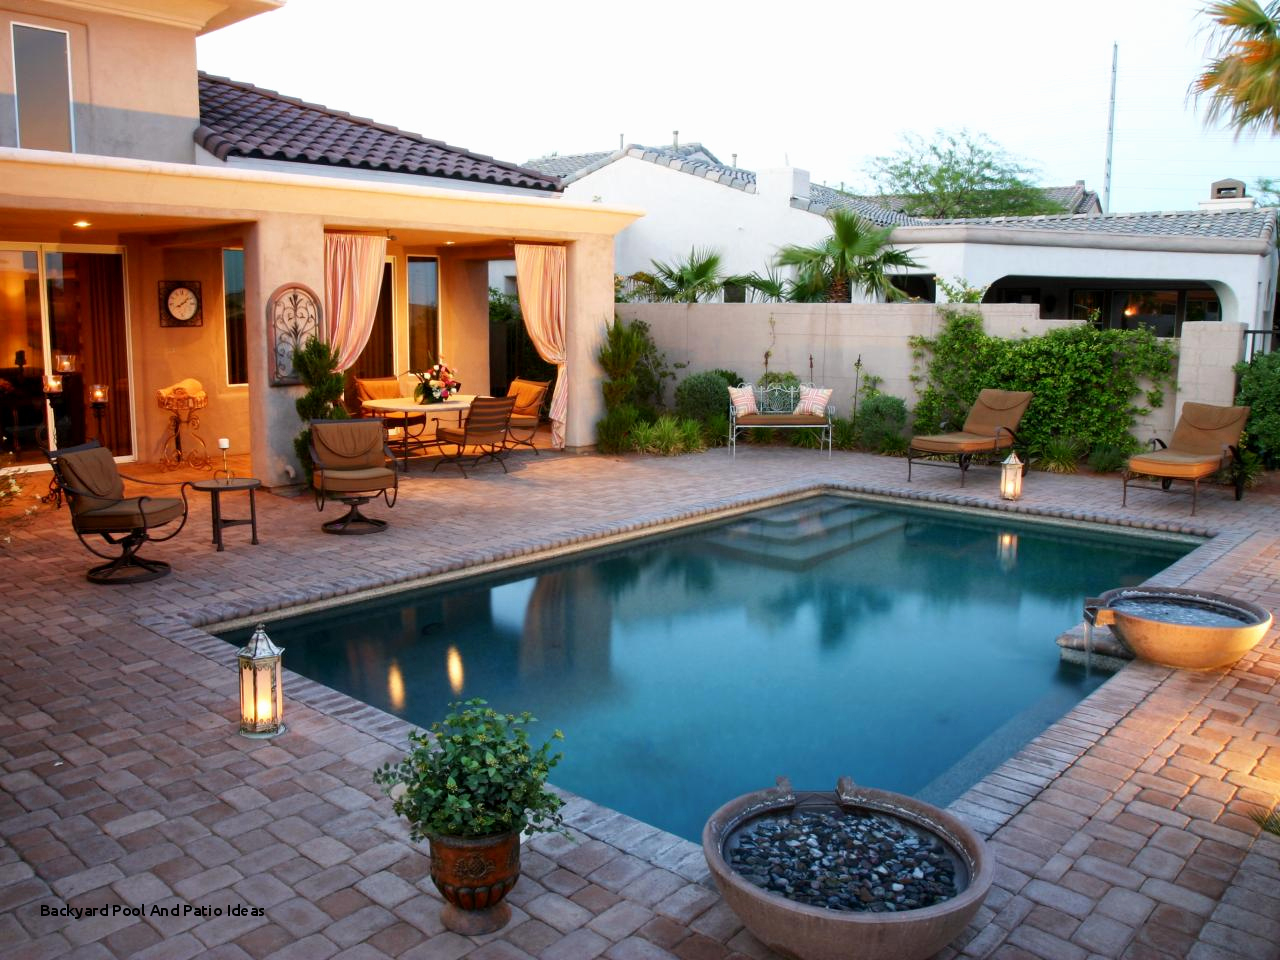 Rectangular Pool Designs And Shapes Unique Backyard Pool And Patio with regard to Backyard Pool Patio Ideas